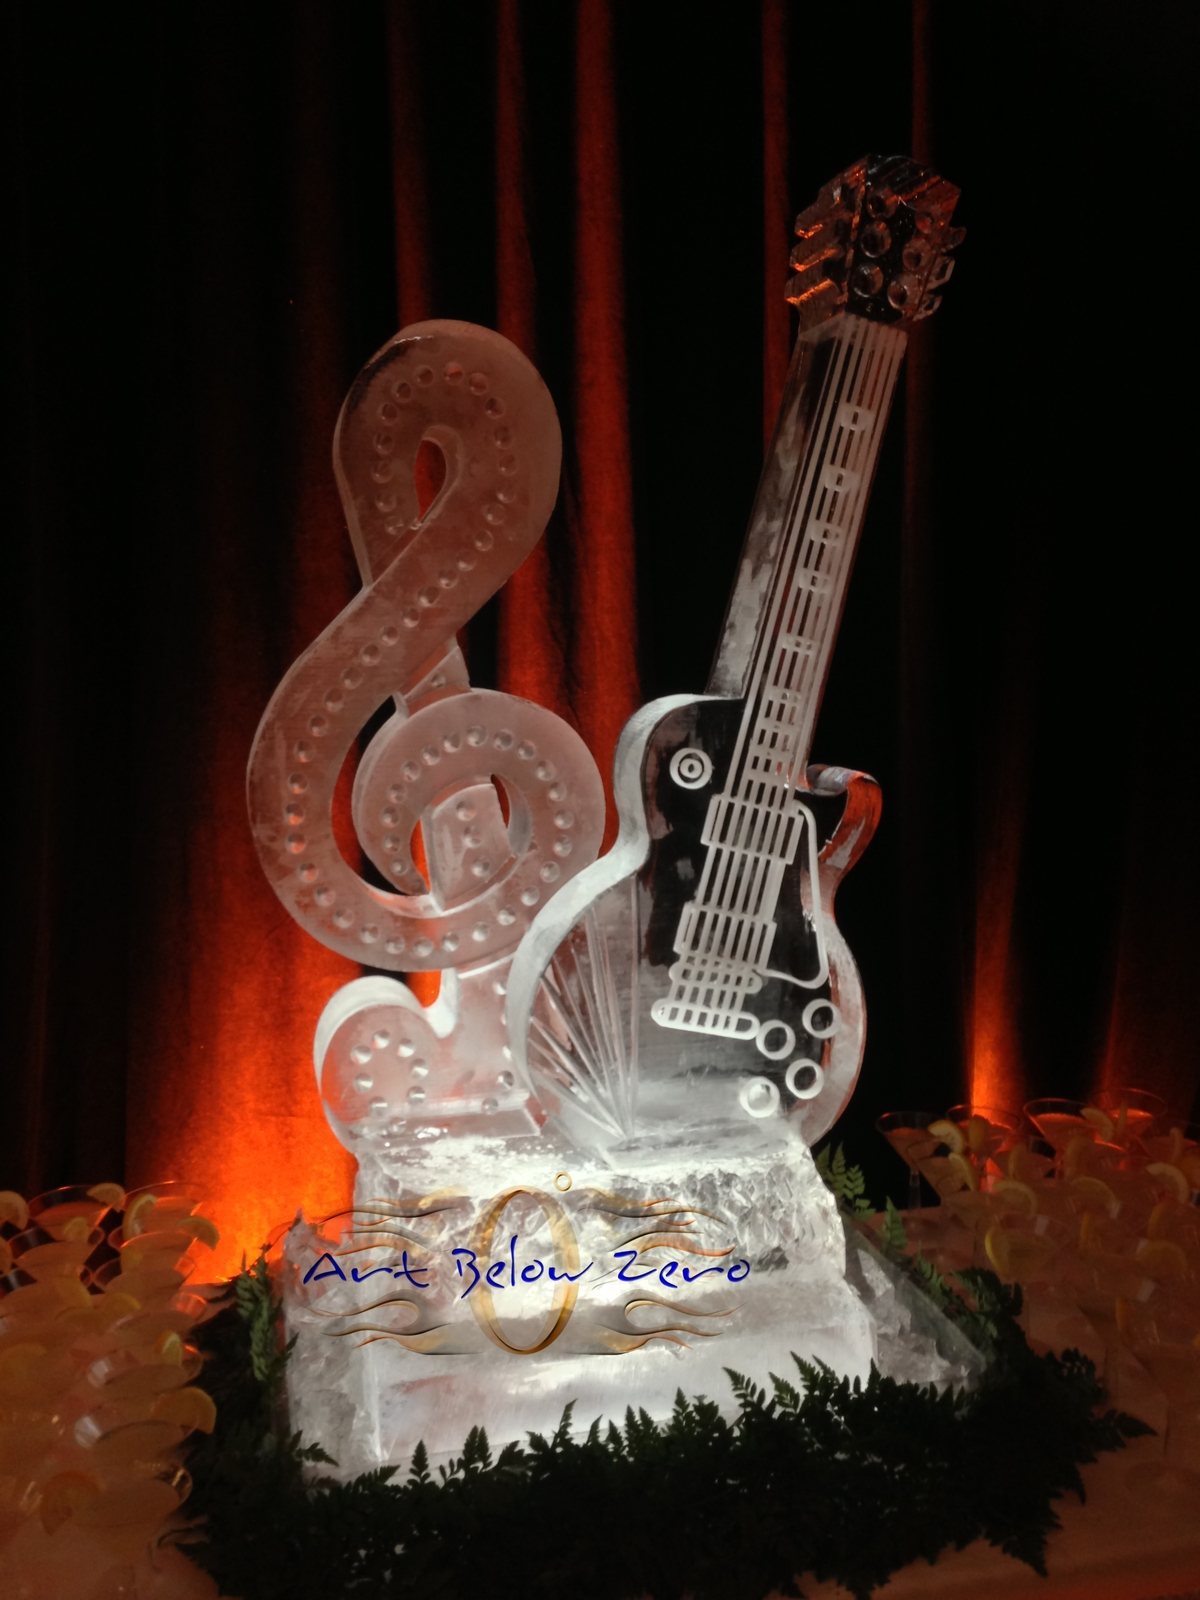 Les_paul_guitar_ice_sculpture_at_the_opening_of_the_museum_exhibit_in_waukesha_